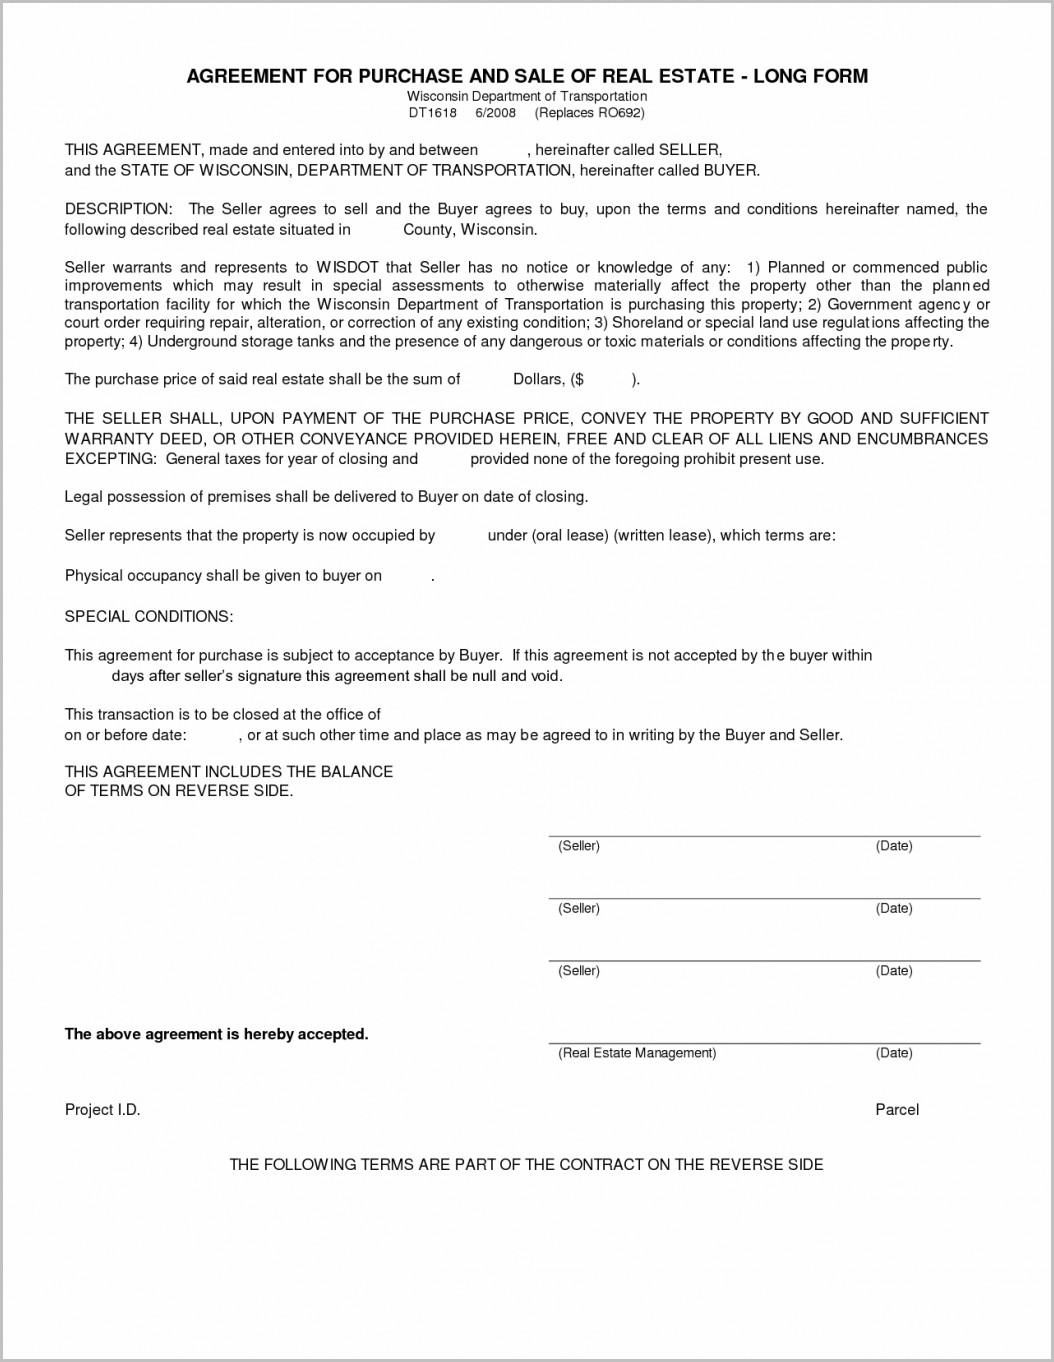 Grant Deed Form Illinois